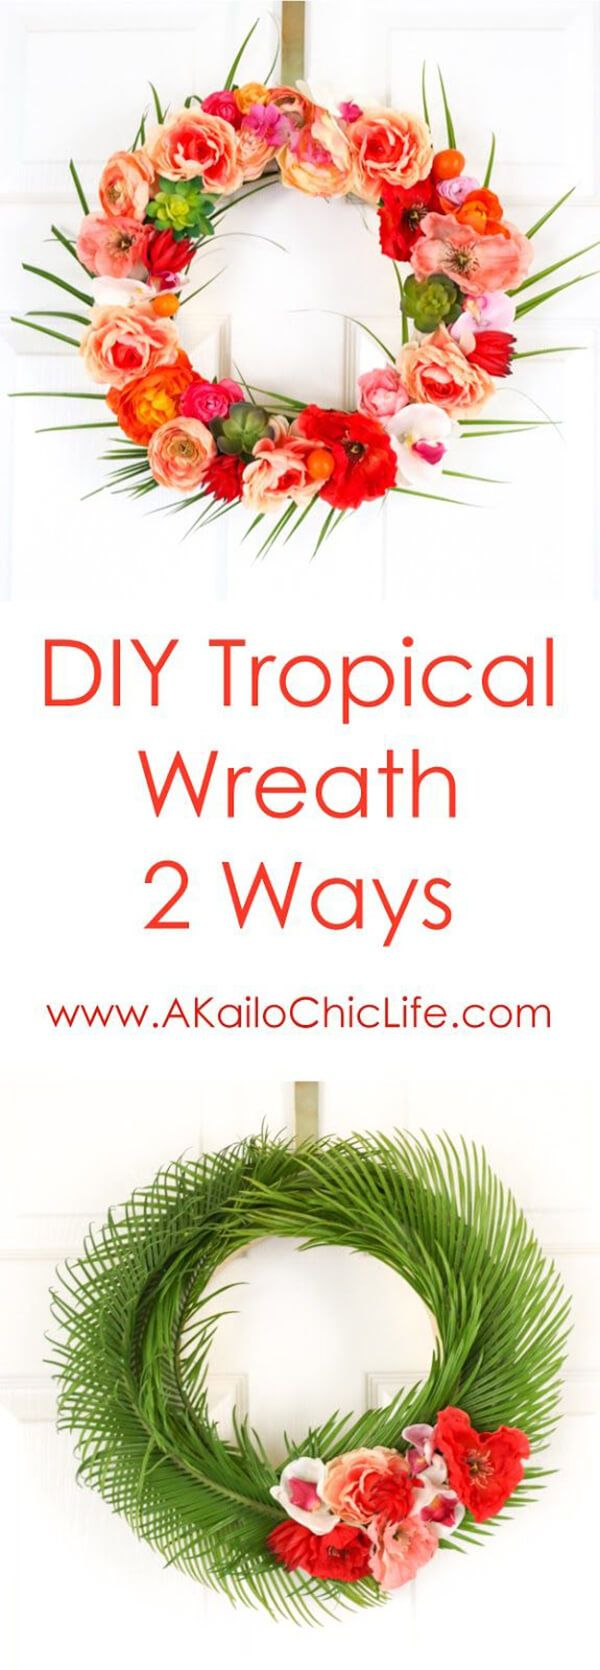 Photo of Two wreaths with a tropical flair